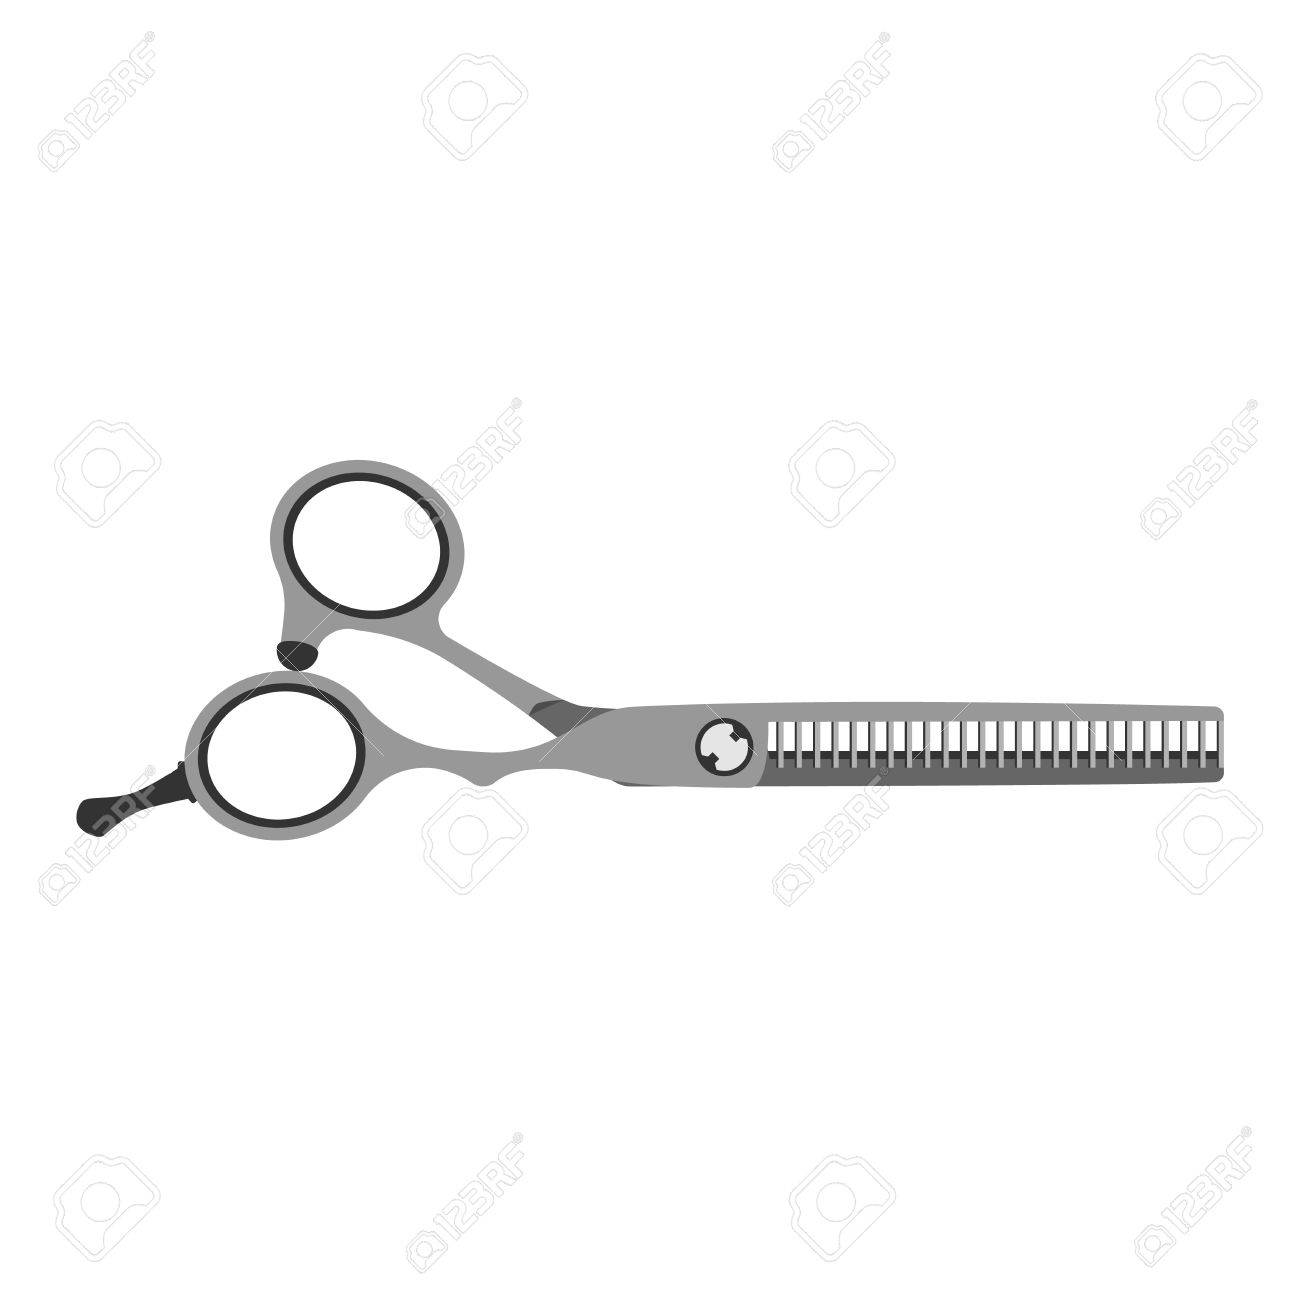 scissor vector illustration tool isolated on white background